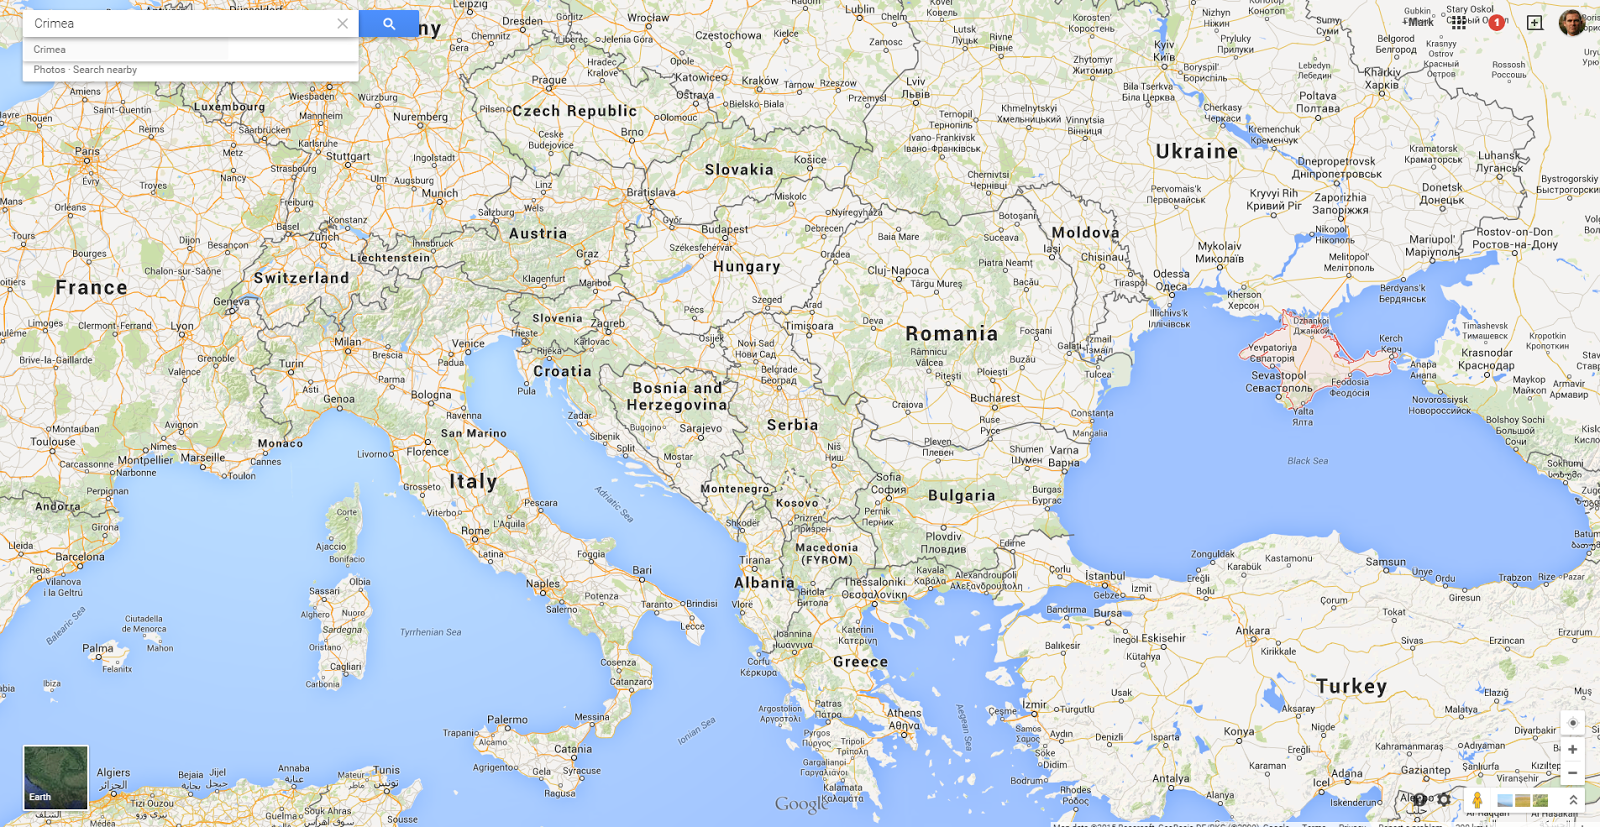 geo political importance of south eastern europe google maps